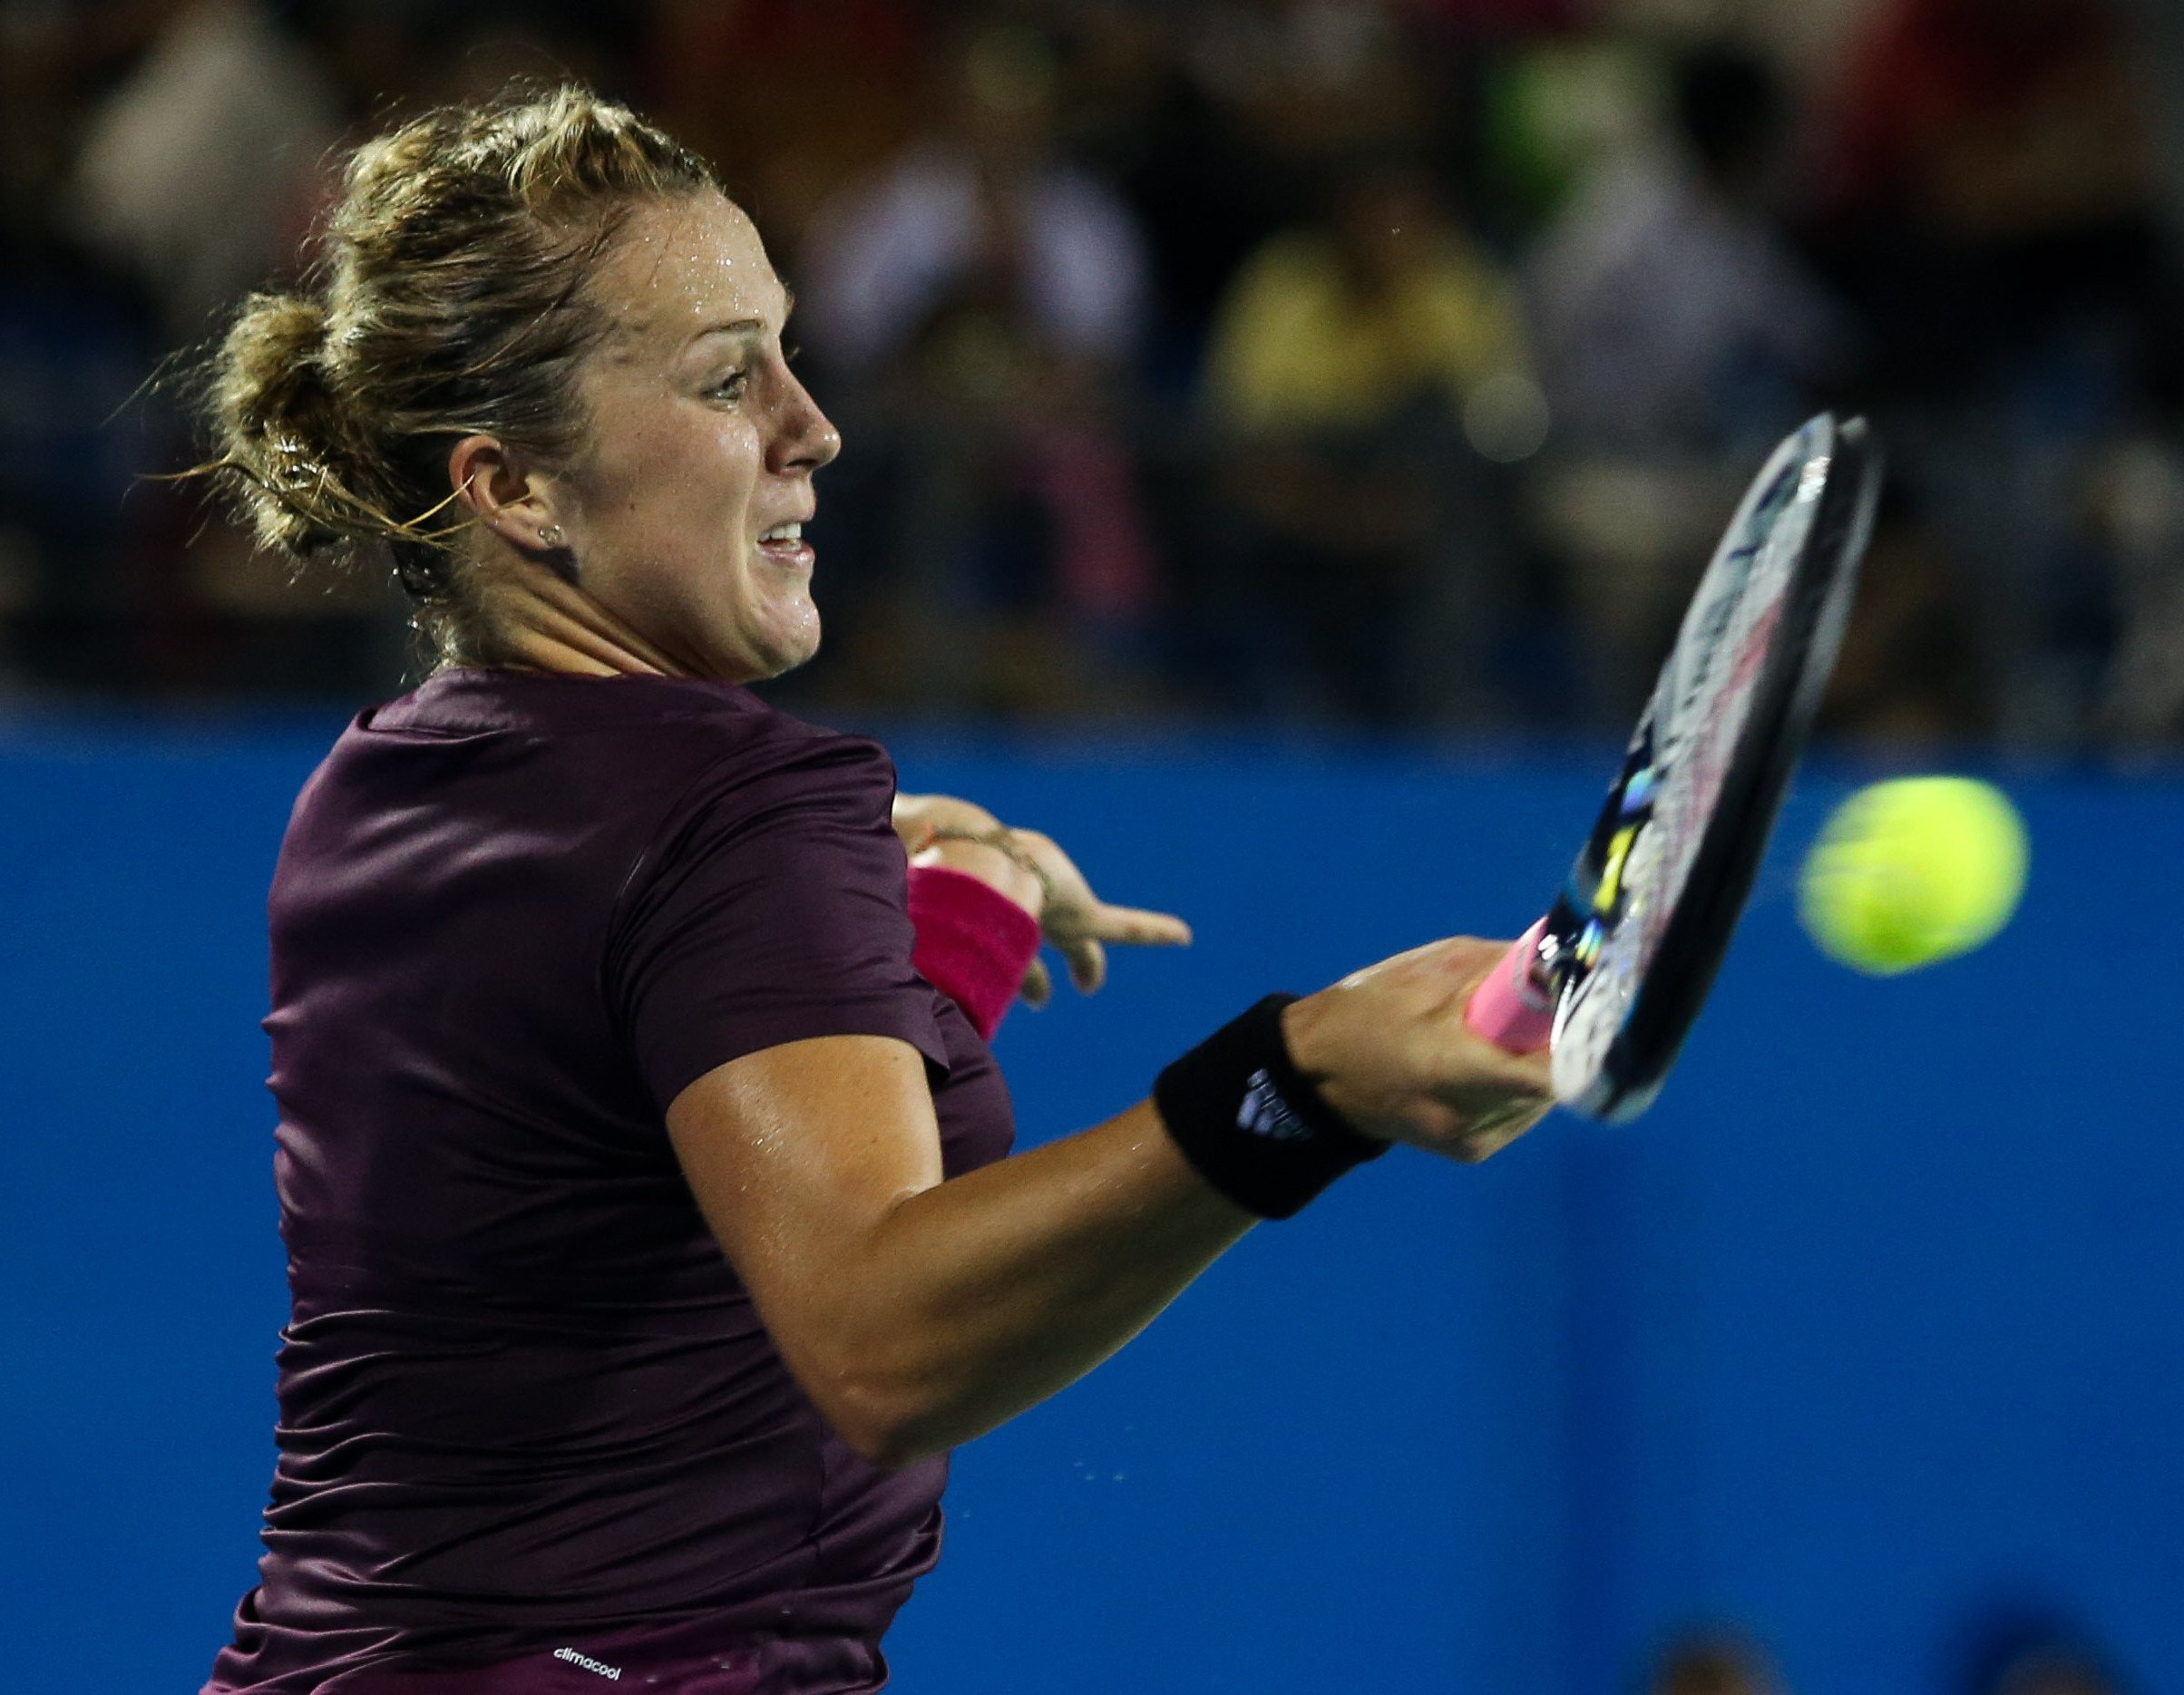 Anastasia Pavlyuchenkova upset No. 5-seed Ana Ivanovic after she retires, down 5-7, 5-6.